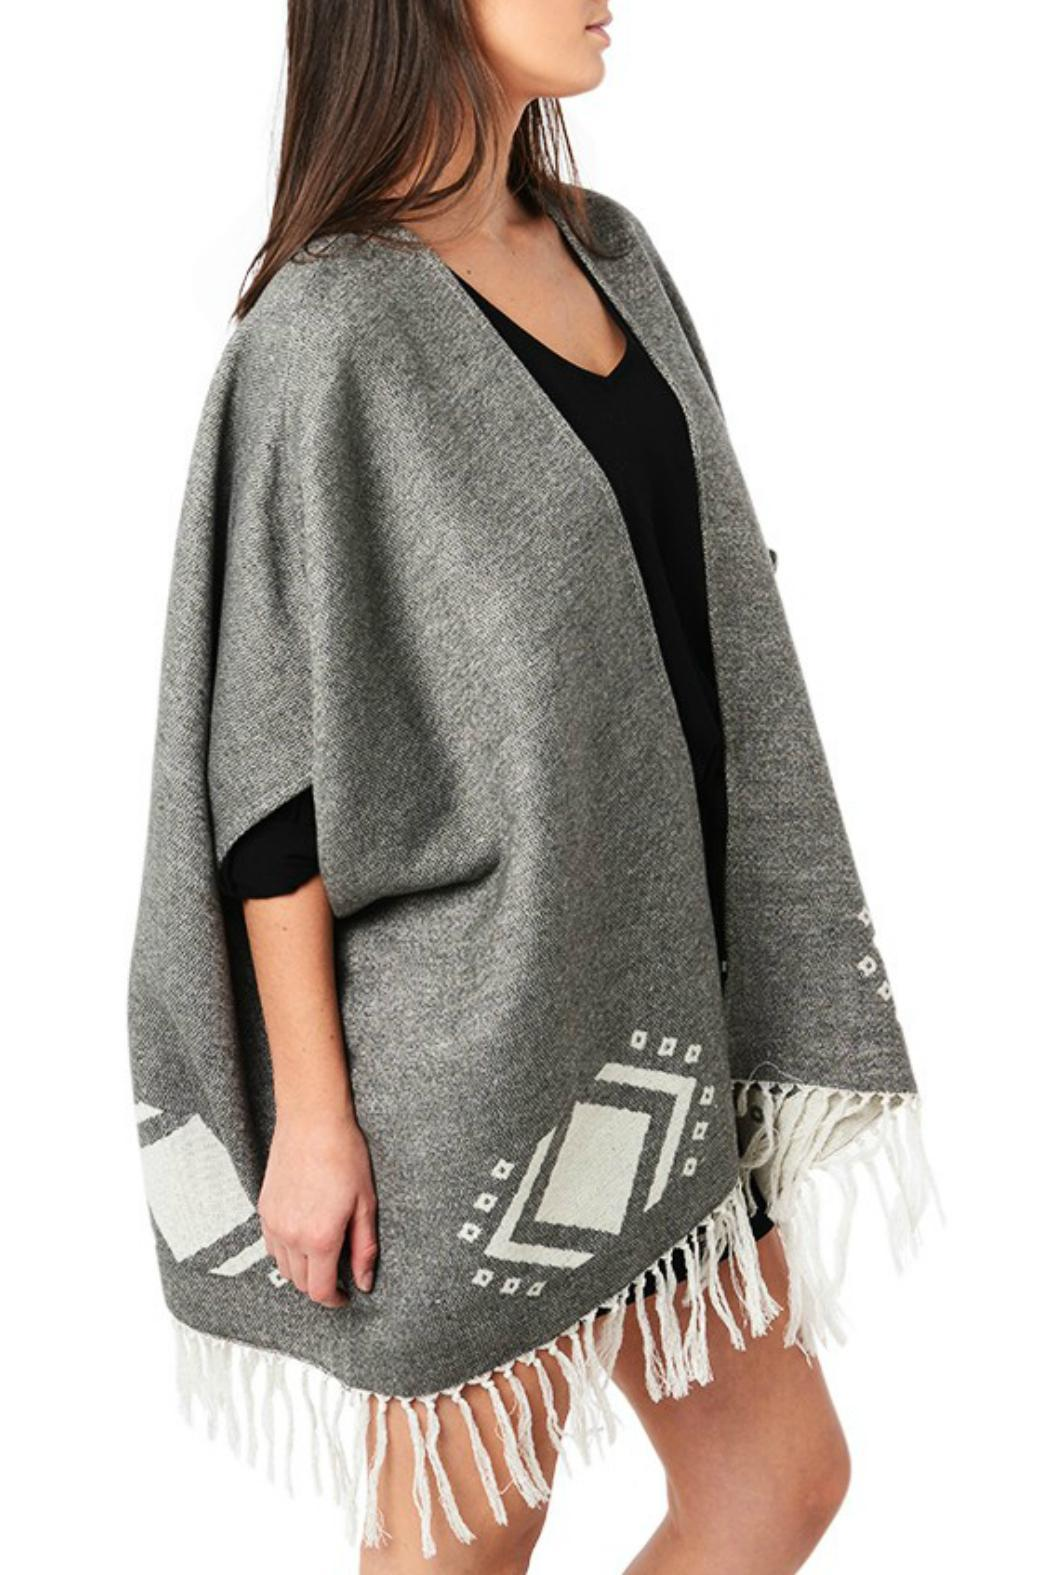 Cupcakes Cashmere Jordy Blanket Poncho From Canada By Blue Sky Fashions Lingerie Shoptiques